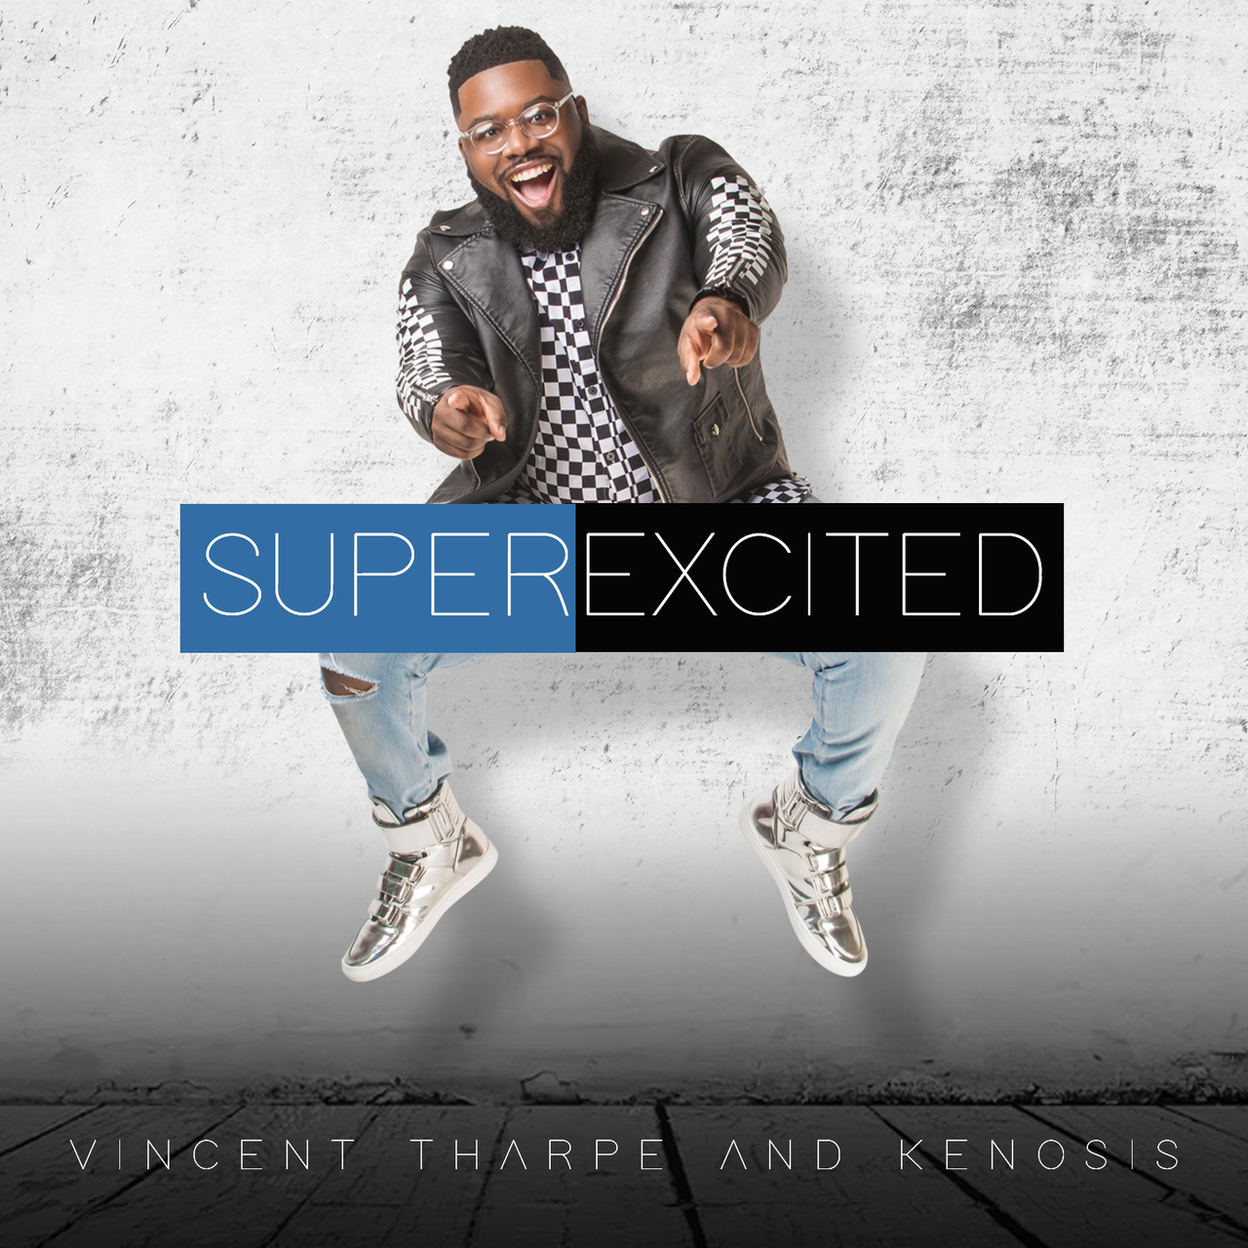 Vincent Tharpe and Kenosis